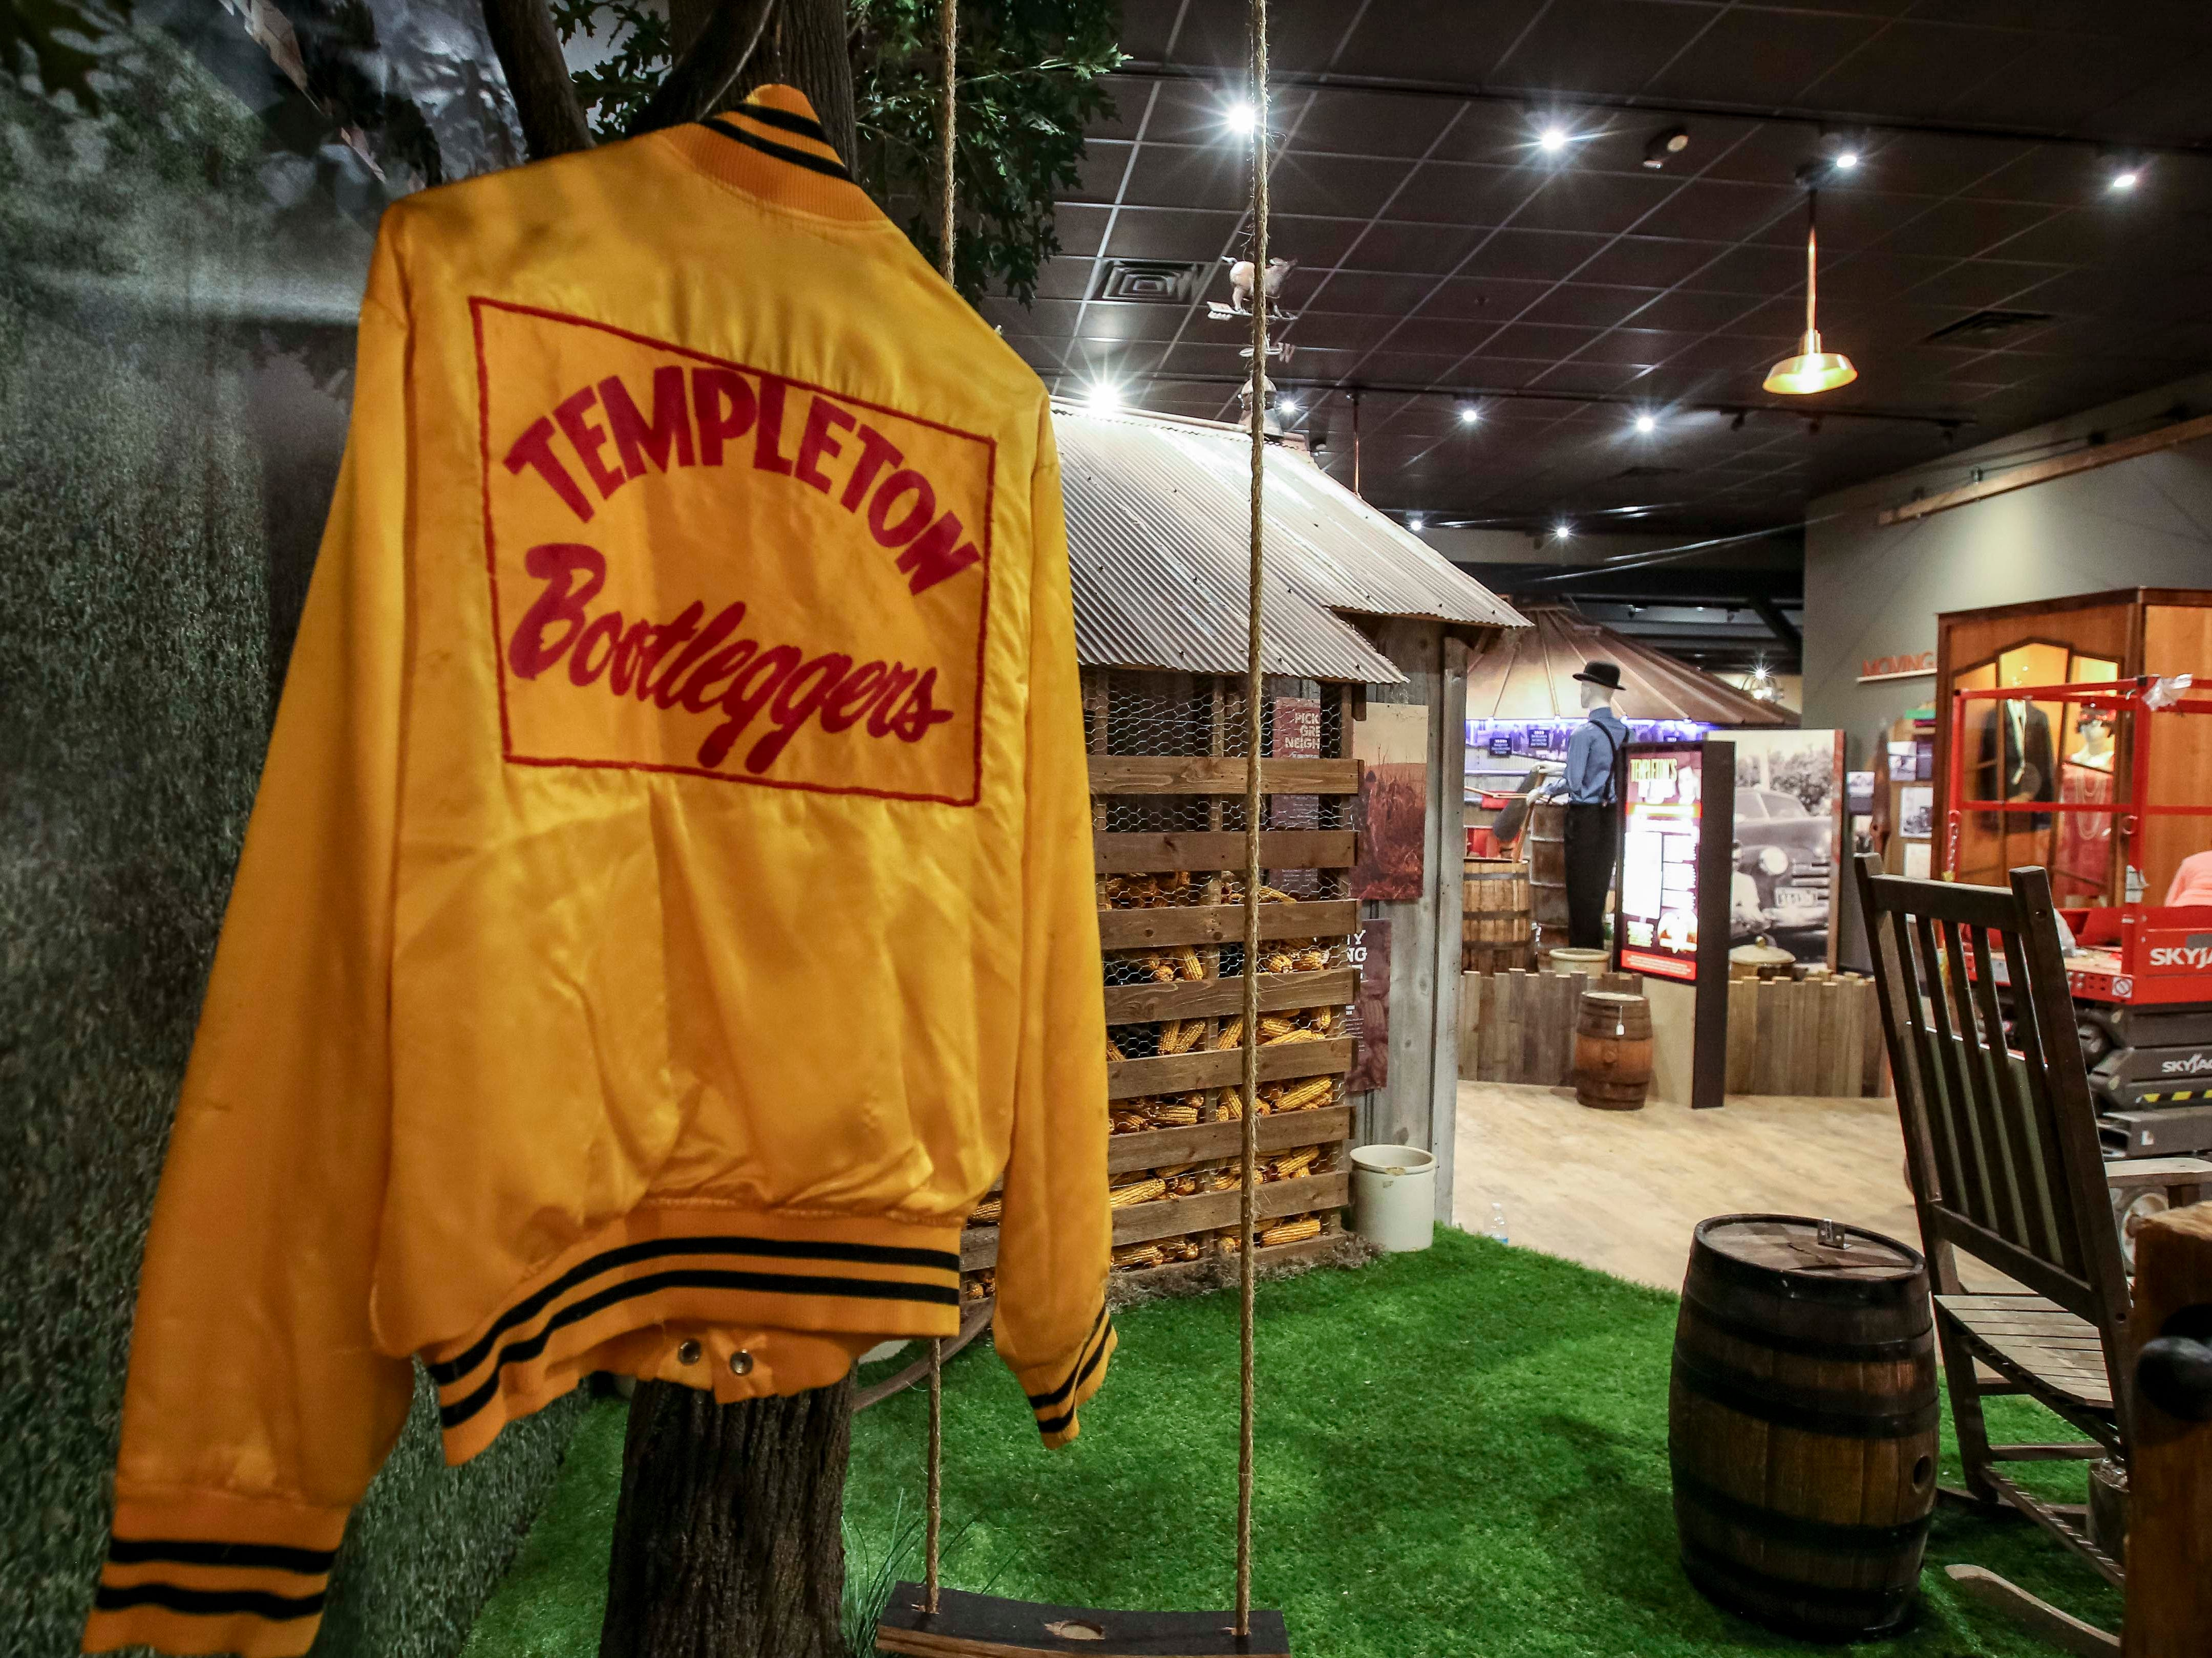 Templeton Bootleggers athletic jacket in the new $35 million distillery and welcome center in Templeton, Iowa, shown here Monday, Aug. 6, 2018